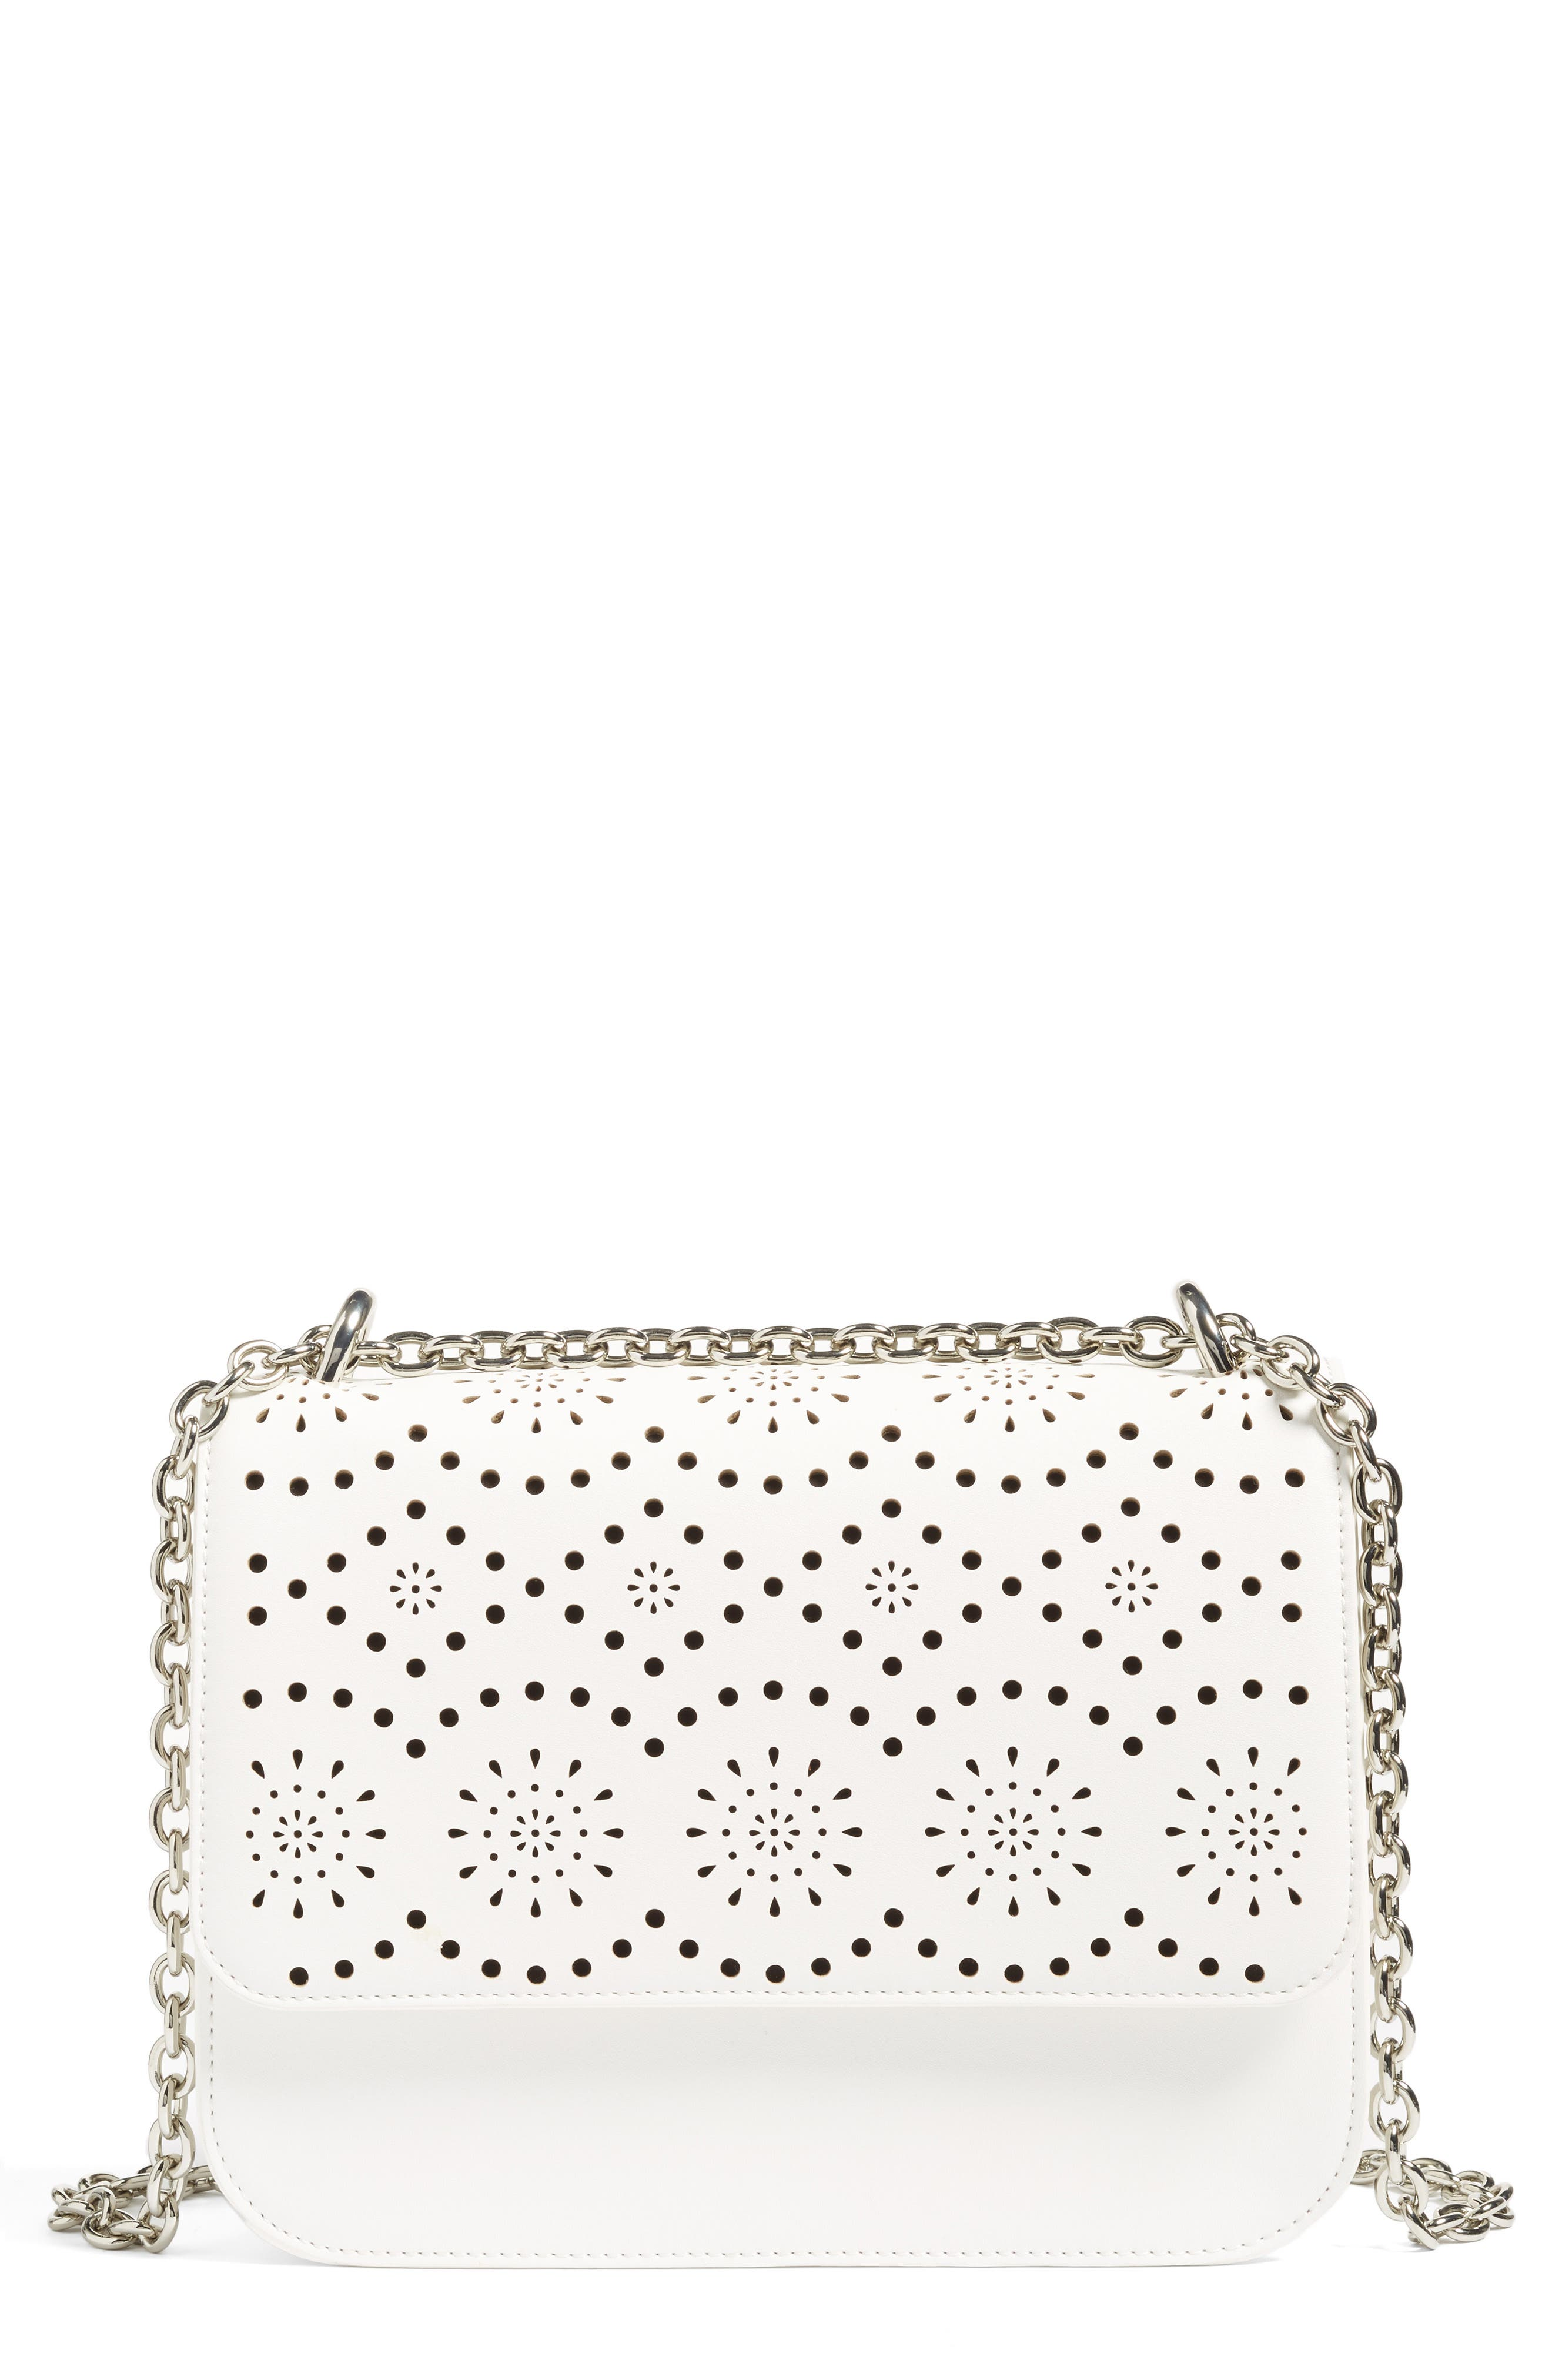 Main Image - Chelsea28 Dahlia Perforated Faux Leather Shoulder Bag